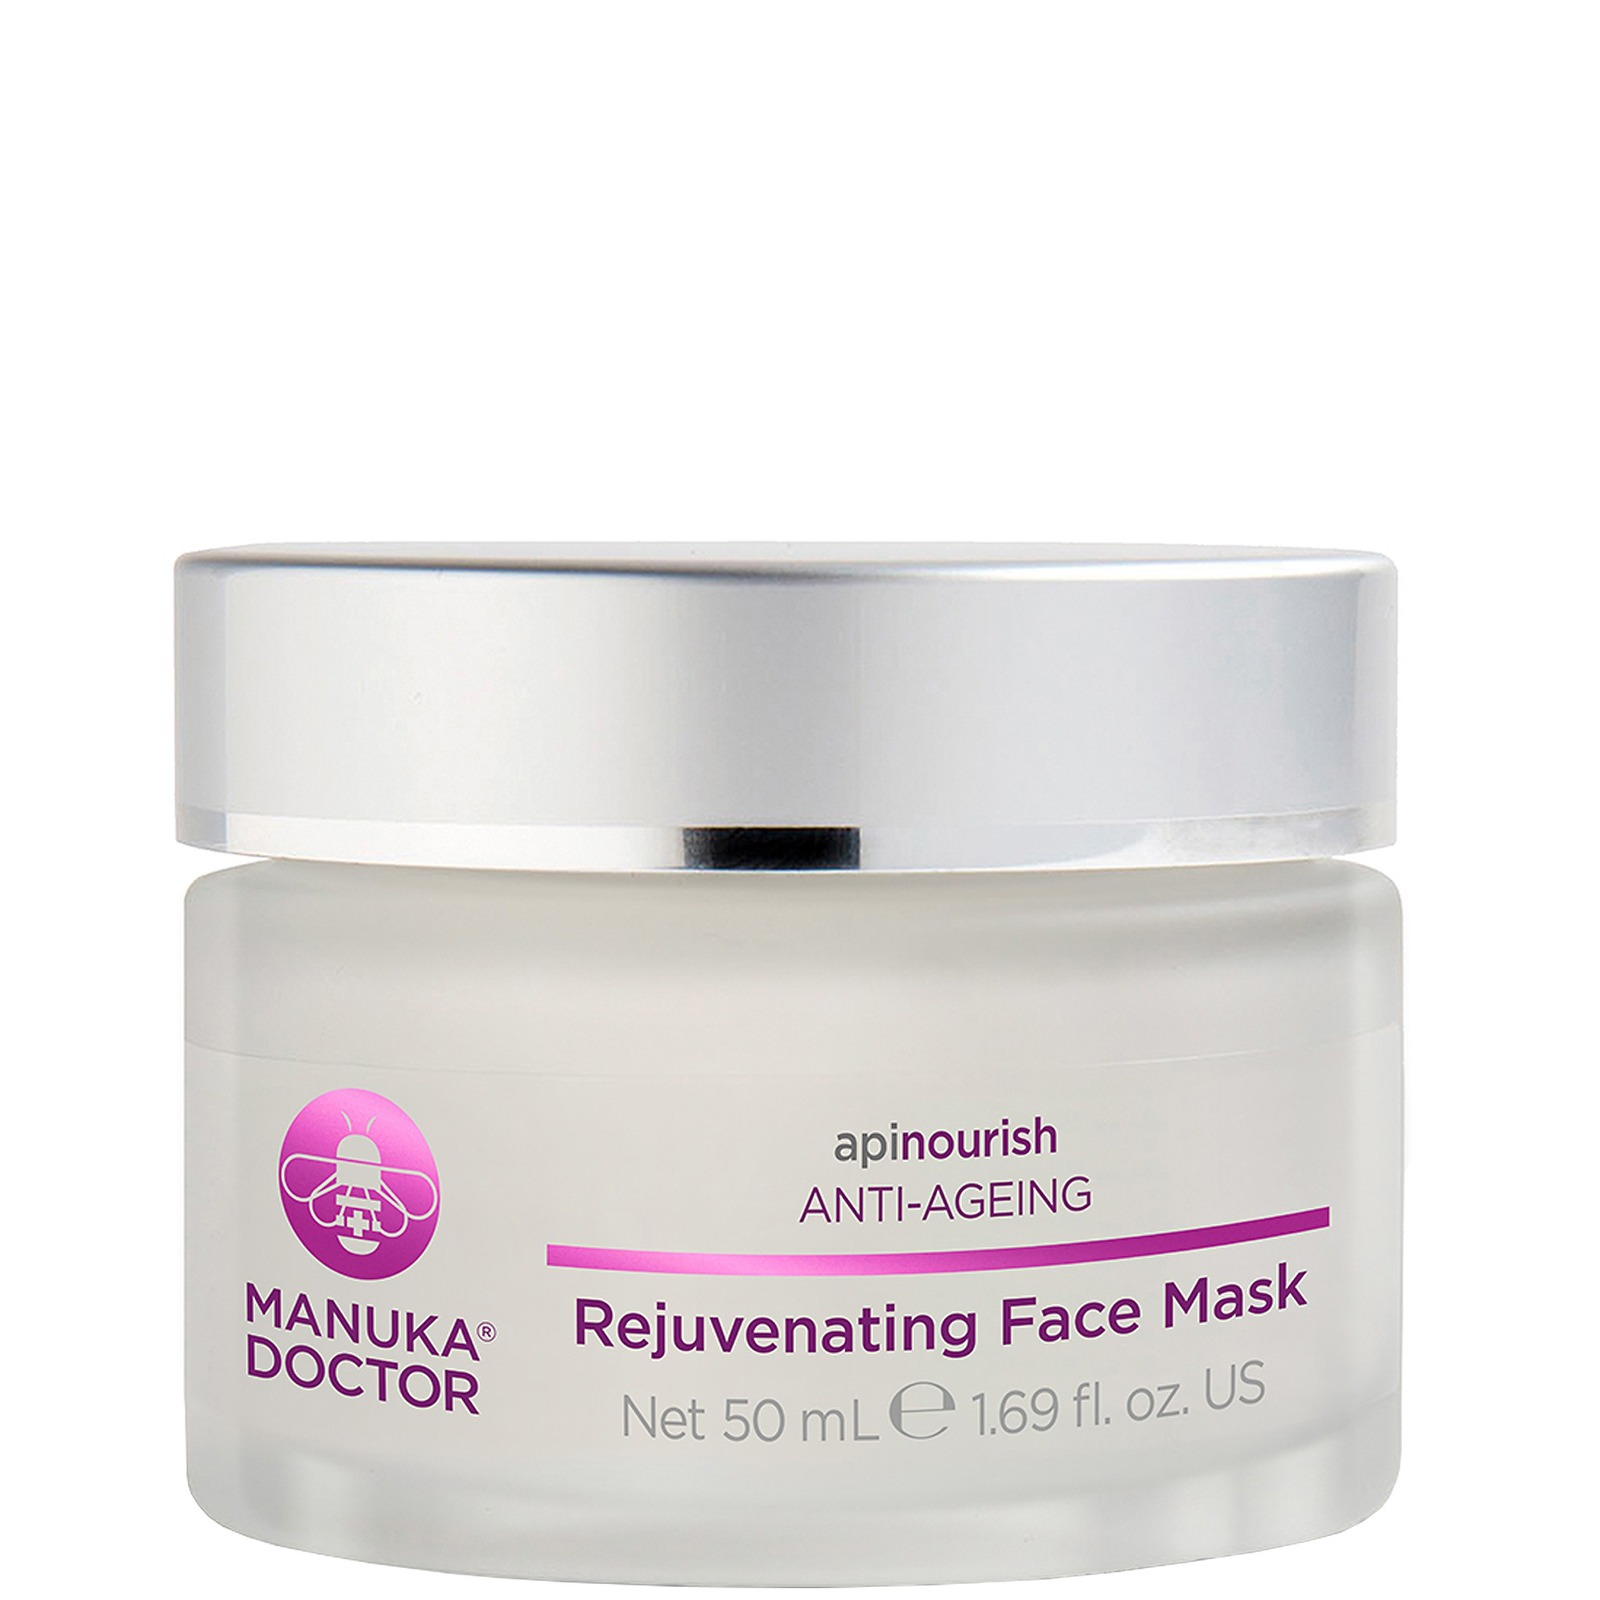 Manuka Doctor ApiNourish Rejuvenating Bee Venom Face Mask 50ml